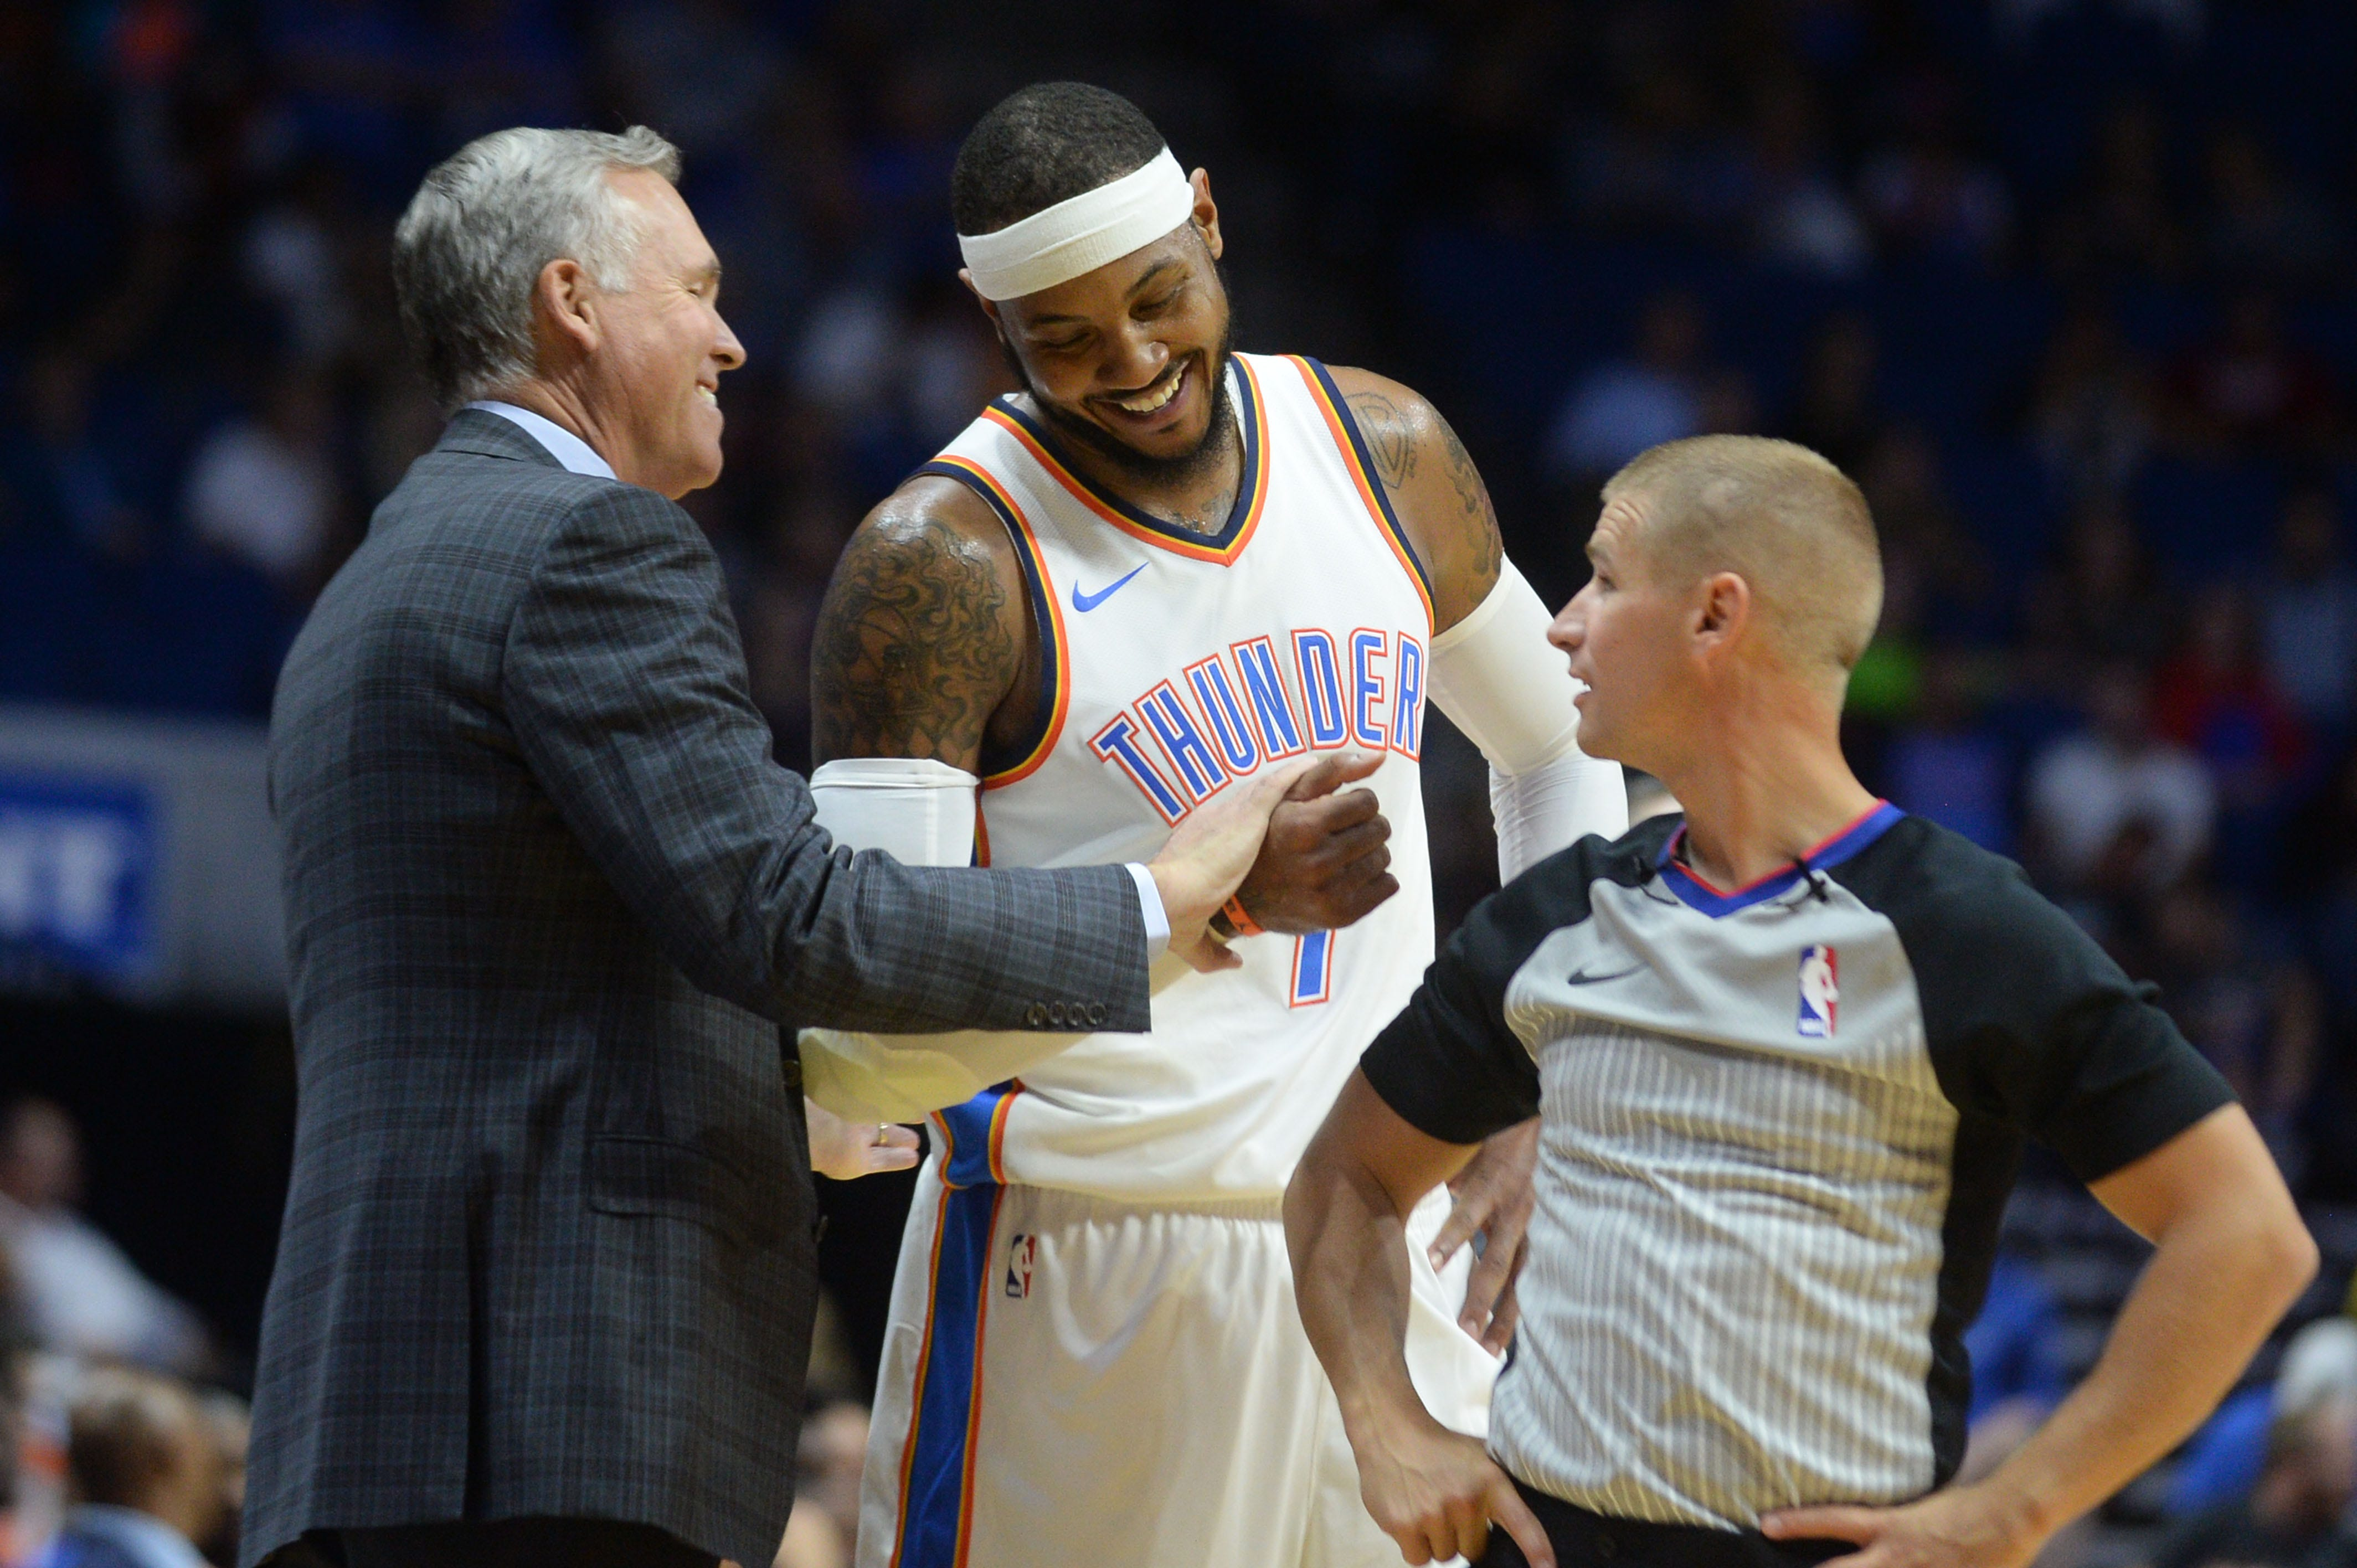 No hard feelings: Mike D'Antoni says Carmelo Anthony is 'a lot better fit' with Rockets